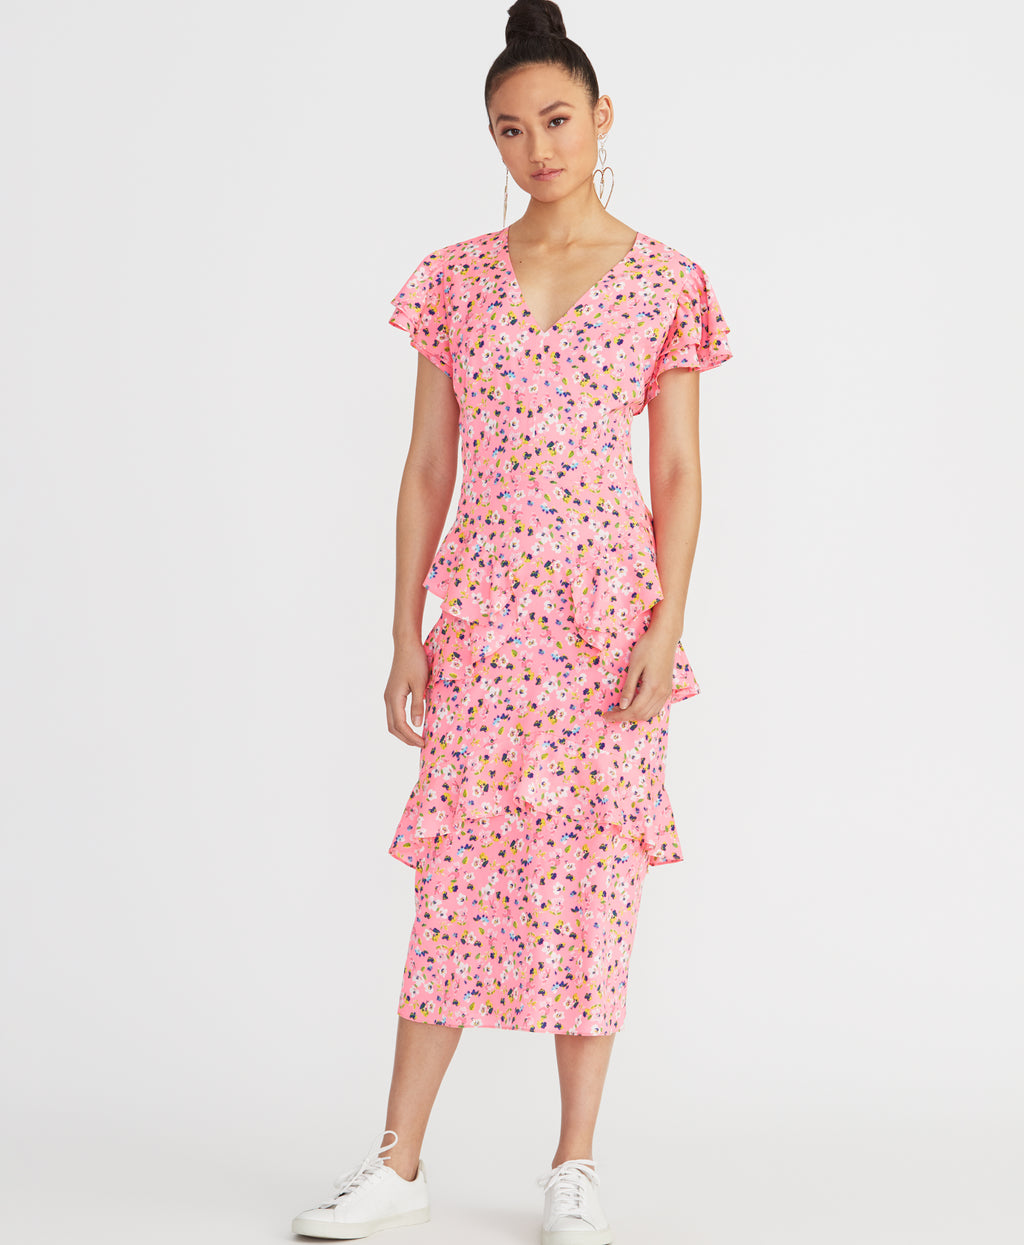 Fabianne Dress | Pink Floral Combo